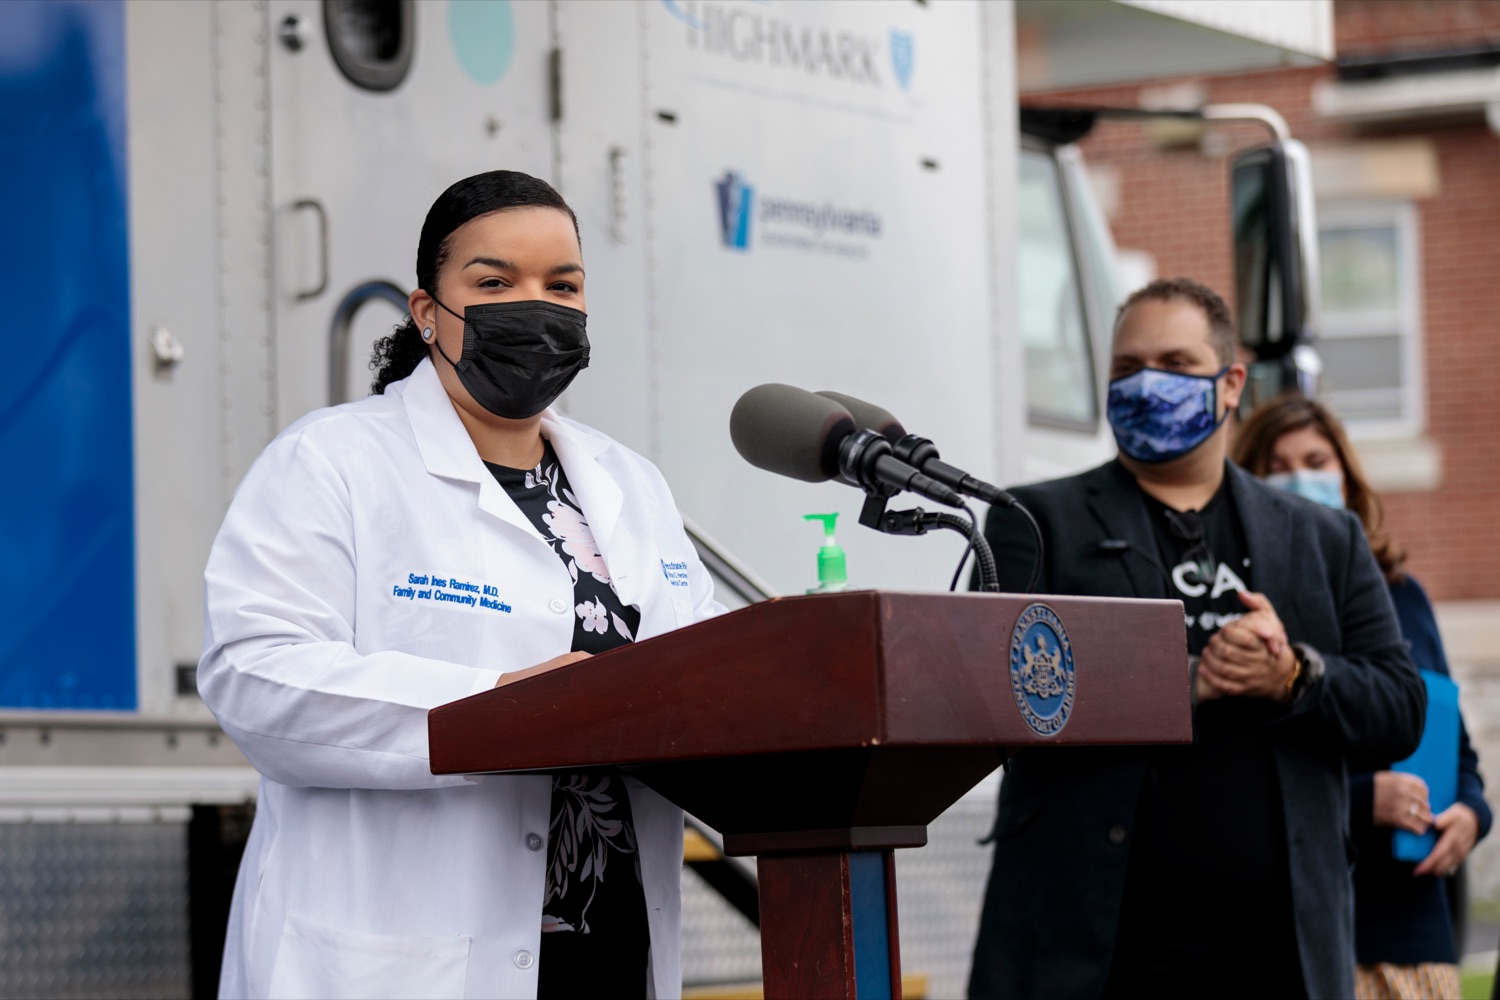 """<a href=""""https://filesource.wostreaming.net/commonwealthofpa/photo/18675_DOH_Beacon_Clinic_NK_010.jpg"""" target=""""_blank"""">⇣Download Photo<br></a>Penn State Health System clinician Dr. Sarah Ramirez speaks during a press conference, which discussed an upcoming COVID-19 mobile response vaccination tour to provide vaccinations and education to minority and underserved communities across the commonwealth, outside of Beacon Clinic in Harrisburg on Monday, April 12, 2021."""